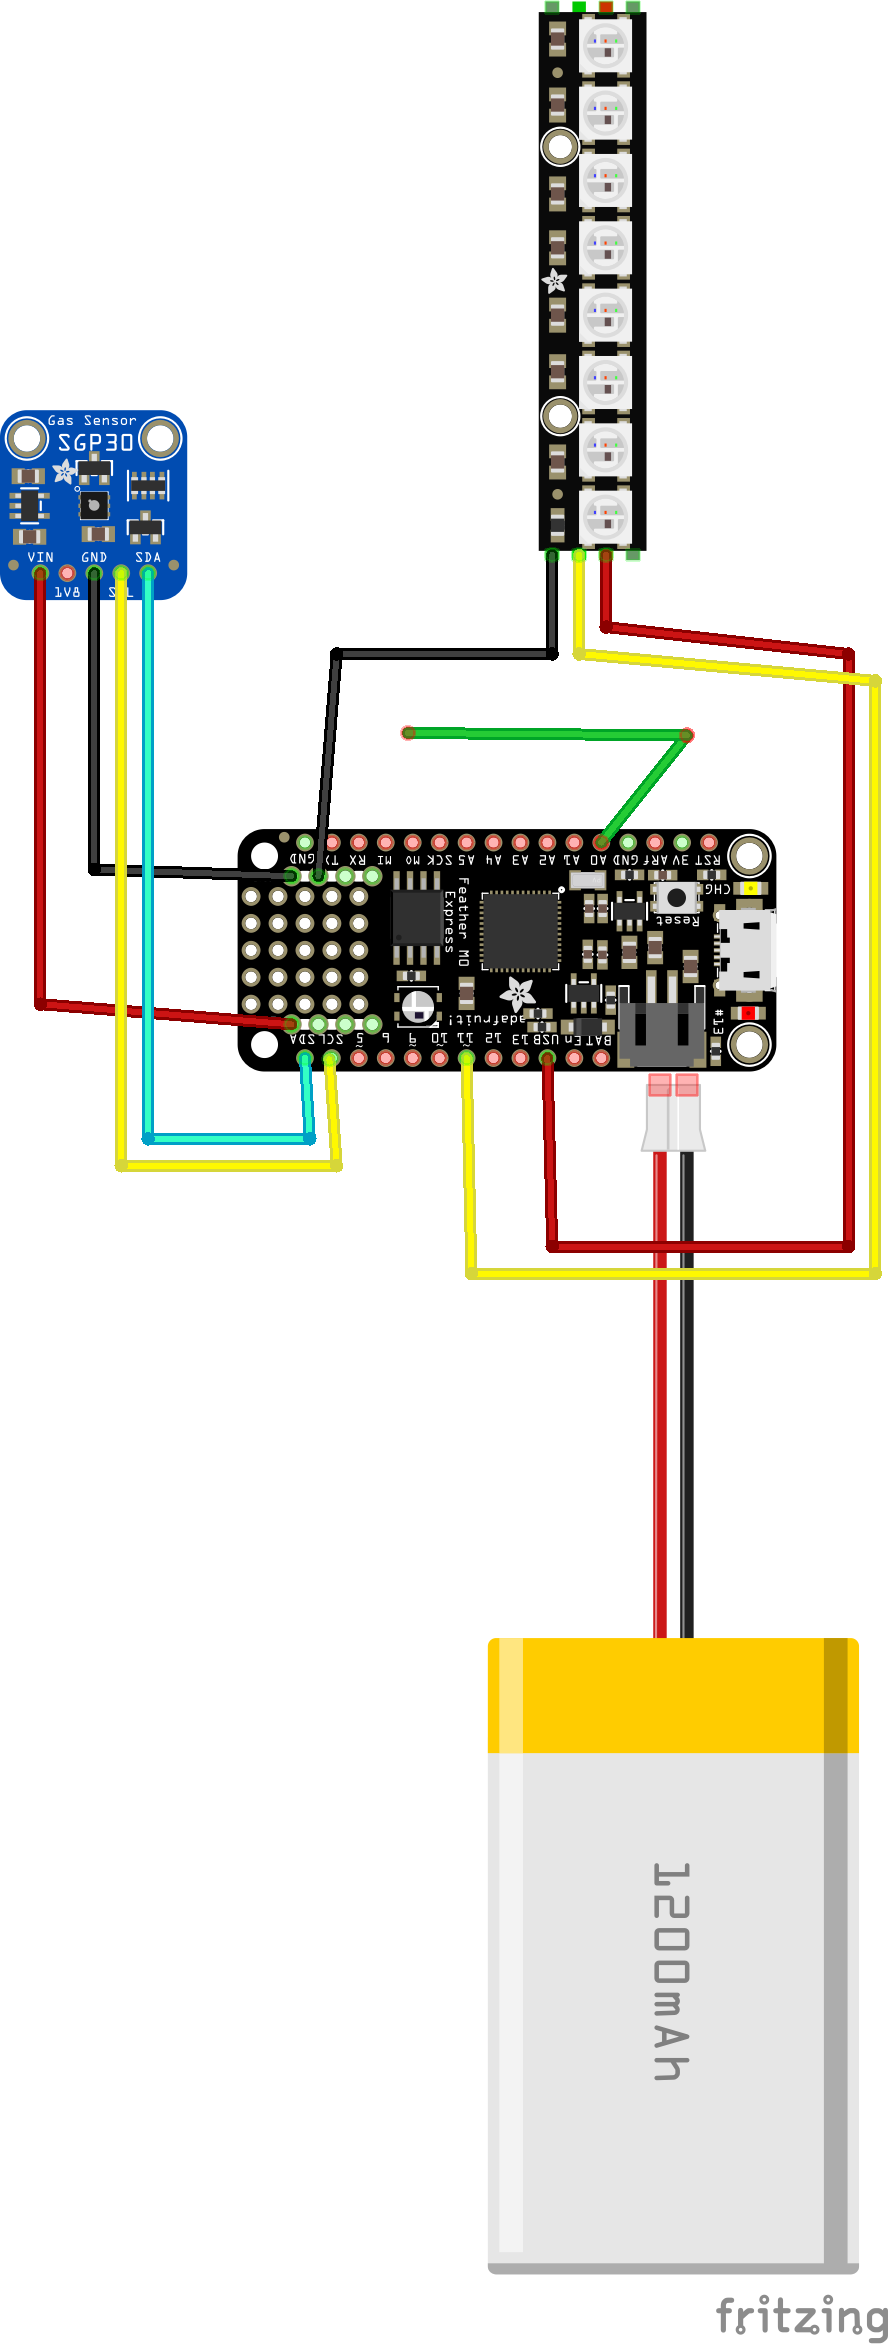 Circuit diagram for the aqo, showing how to connect the Feather M0, SPG30, NeoPixel Bar, and battery together